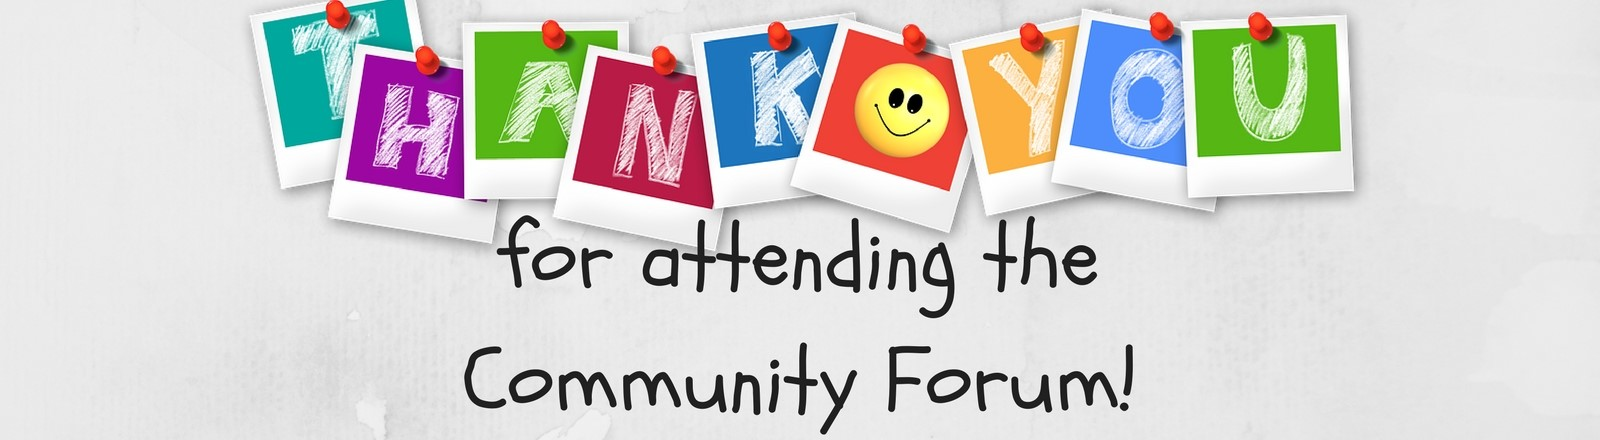 Thank you for attending the community forum!